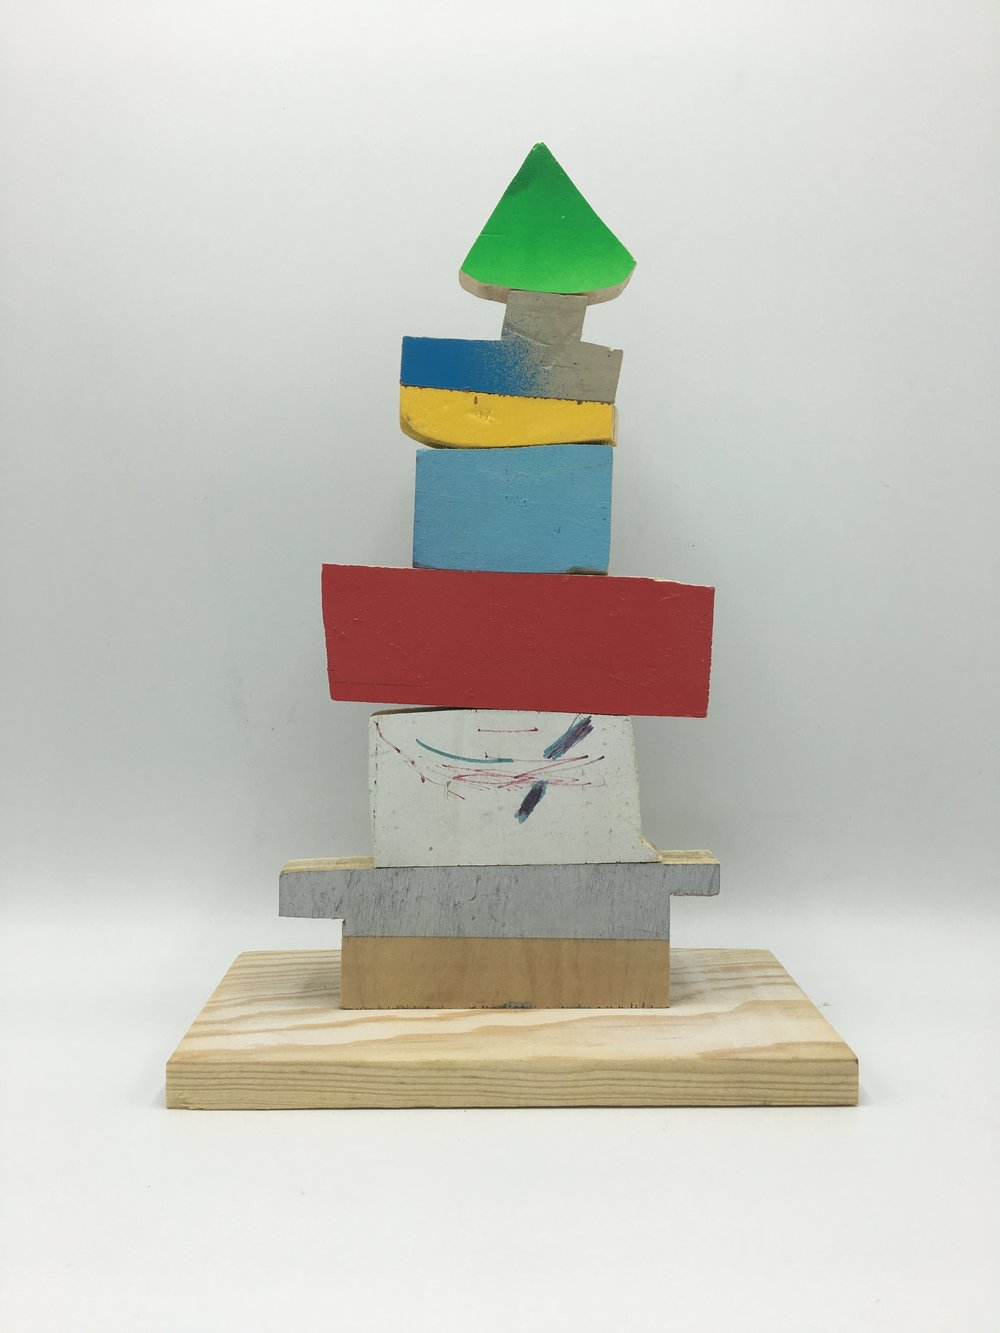 Castle, 2016 Wood, Paint, Glue 10 ½  x 7 x 4 in.